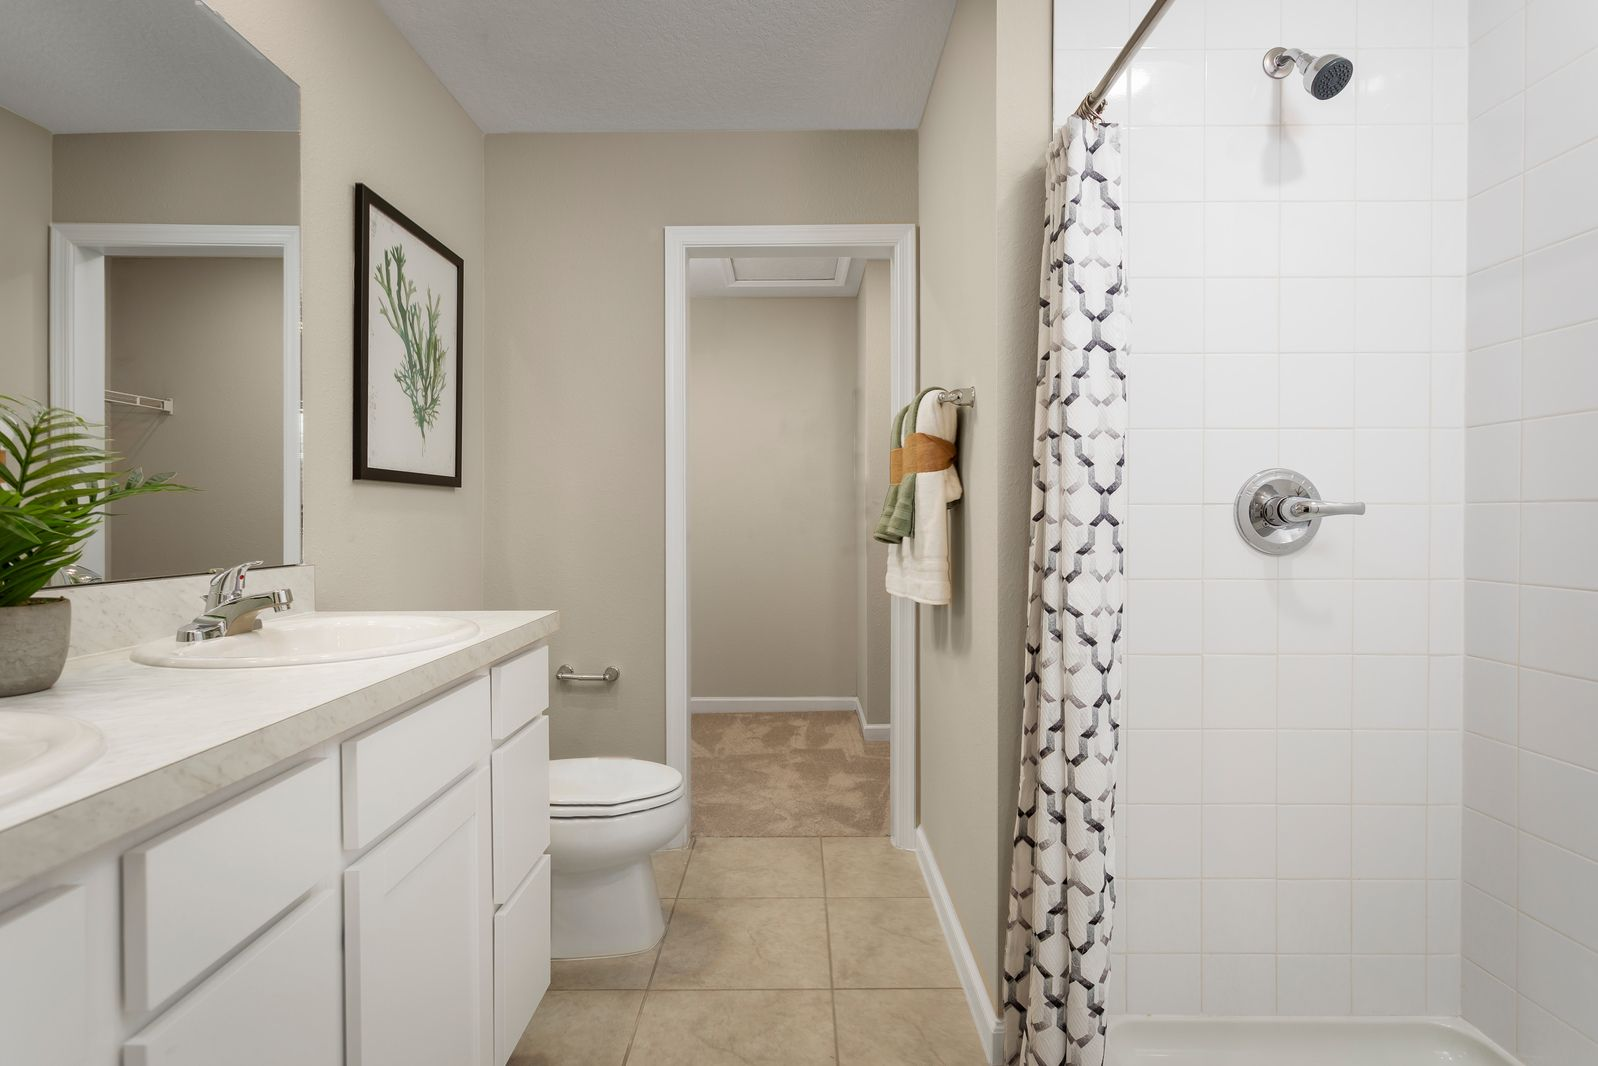 Bathroom featured in the Flamingo By Ryan Homes in Jacksonville-St. Augustine, FL